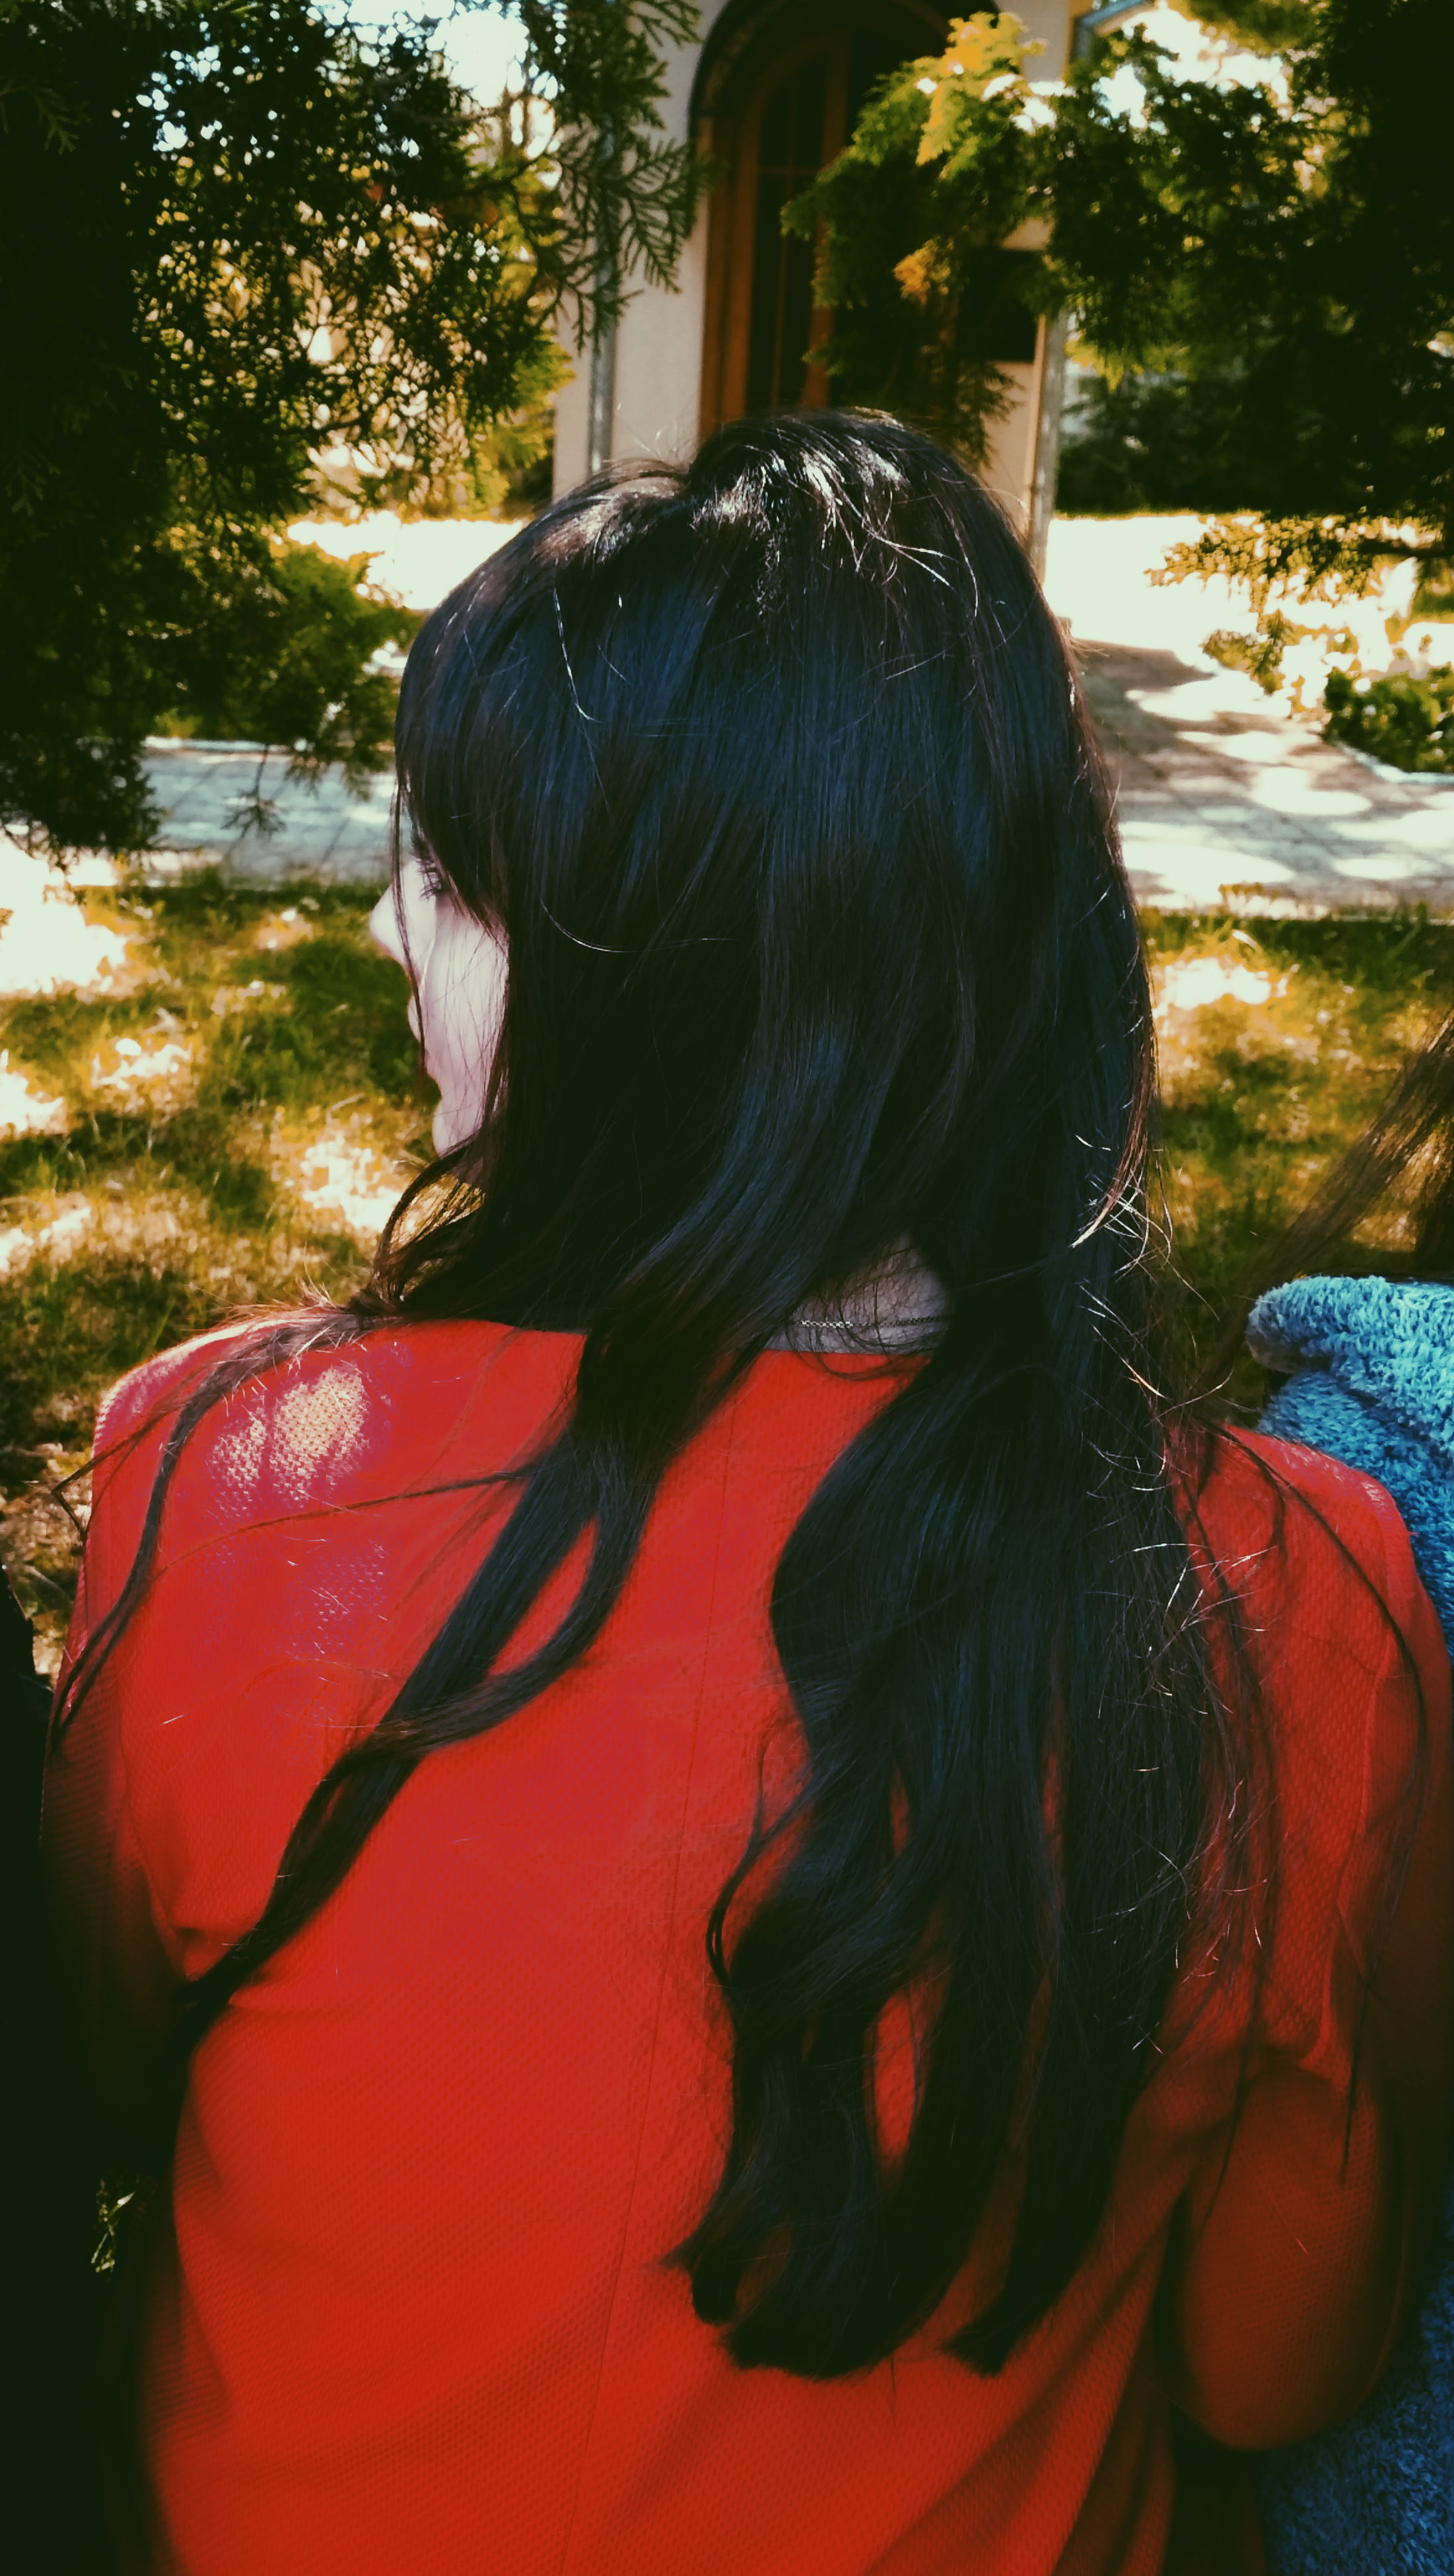 rear view, real people, one person, tree, childhood, leisure activity, outdoors, day, lifestyles, girls, nature, people